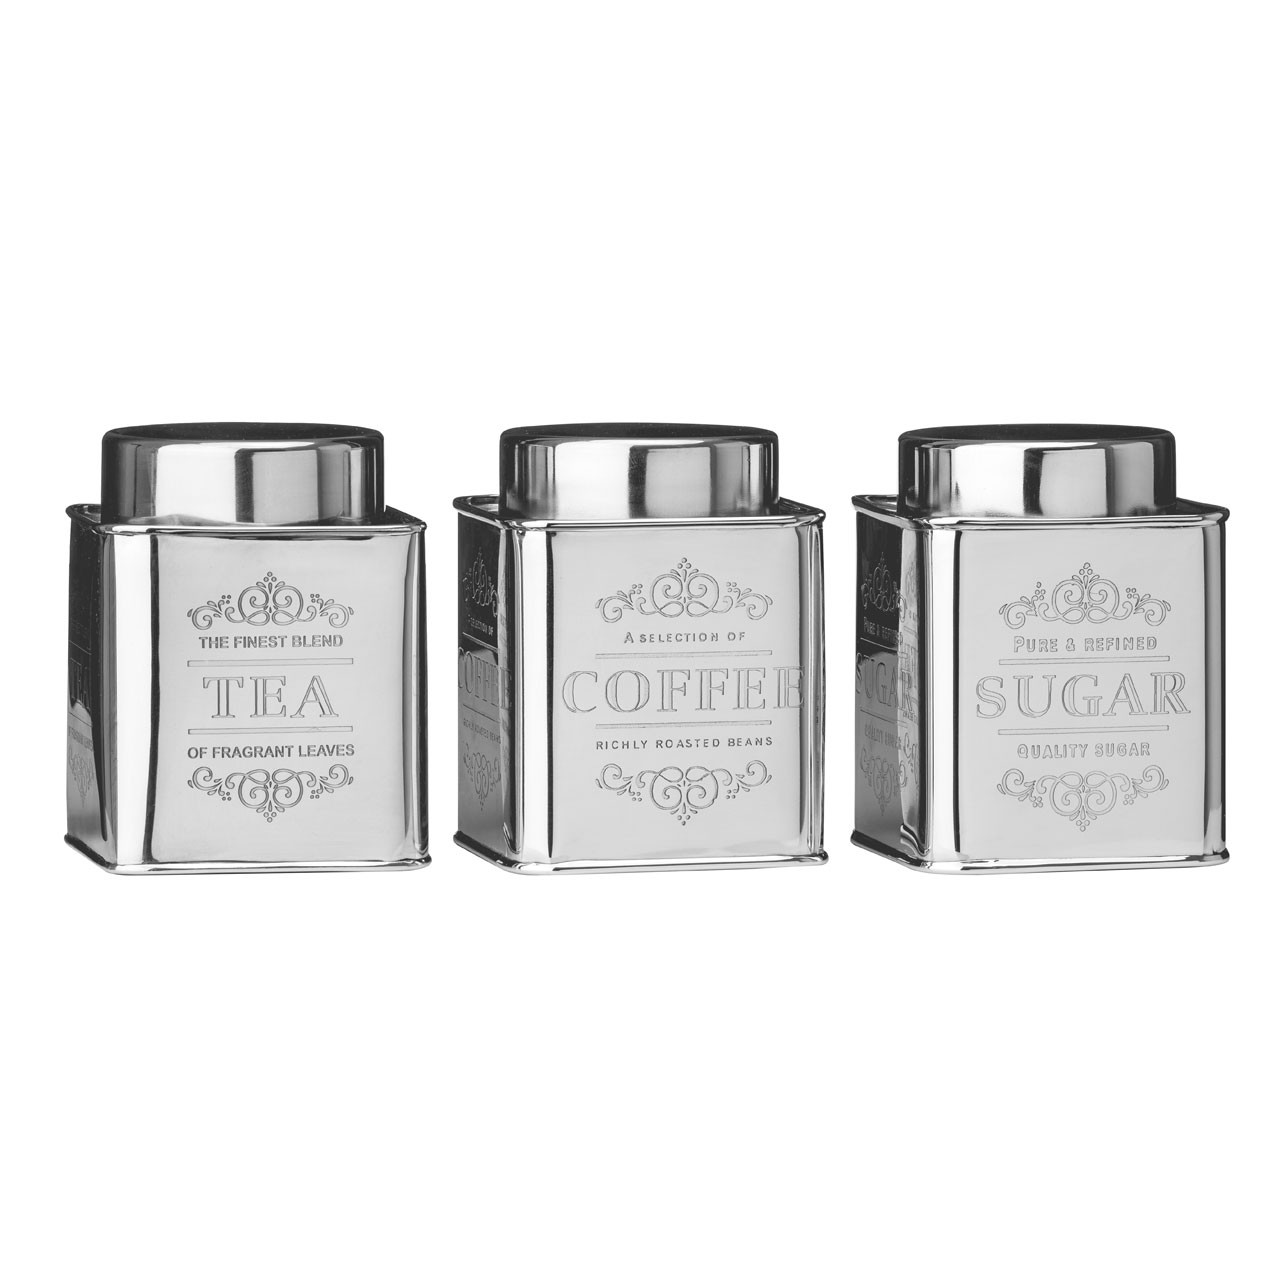 Chai Tea Coffee And Sugar Jars Storage Canisters Set S/ S